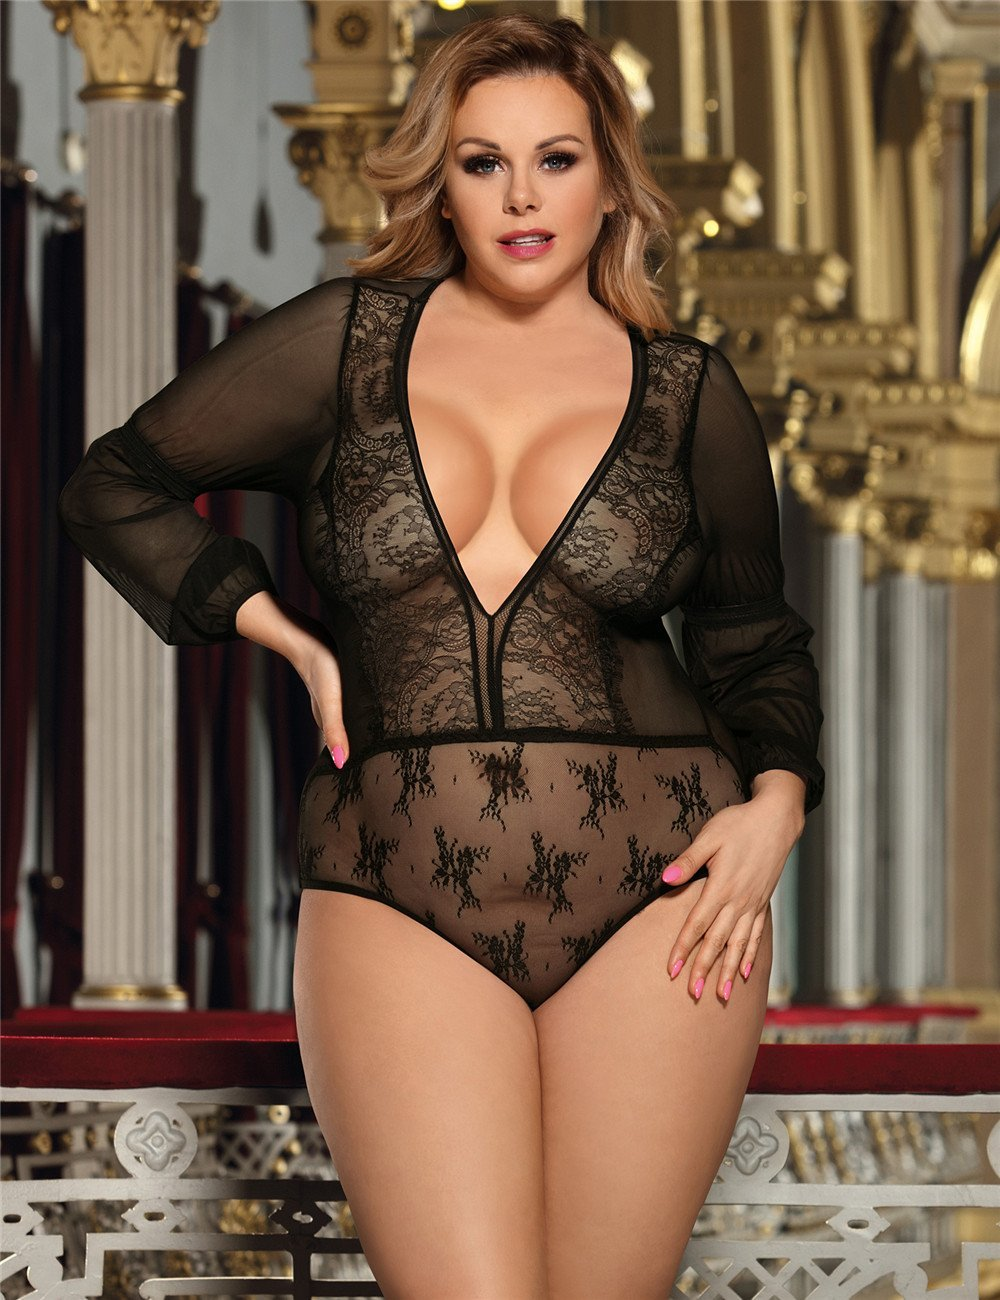 Exquisite Black Lace Long Sleeve Teddy Plus Size Lingerie